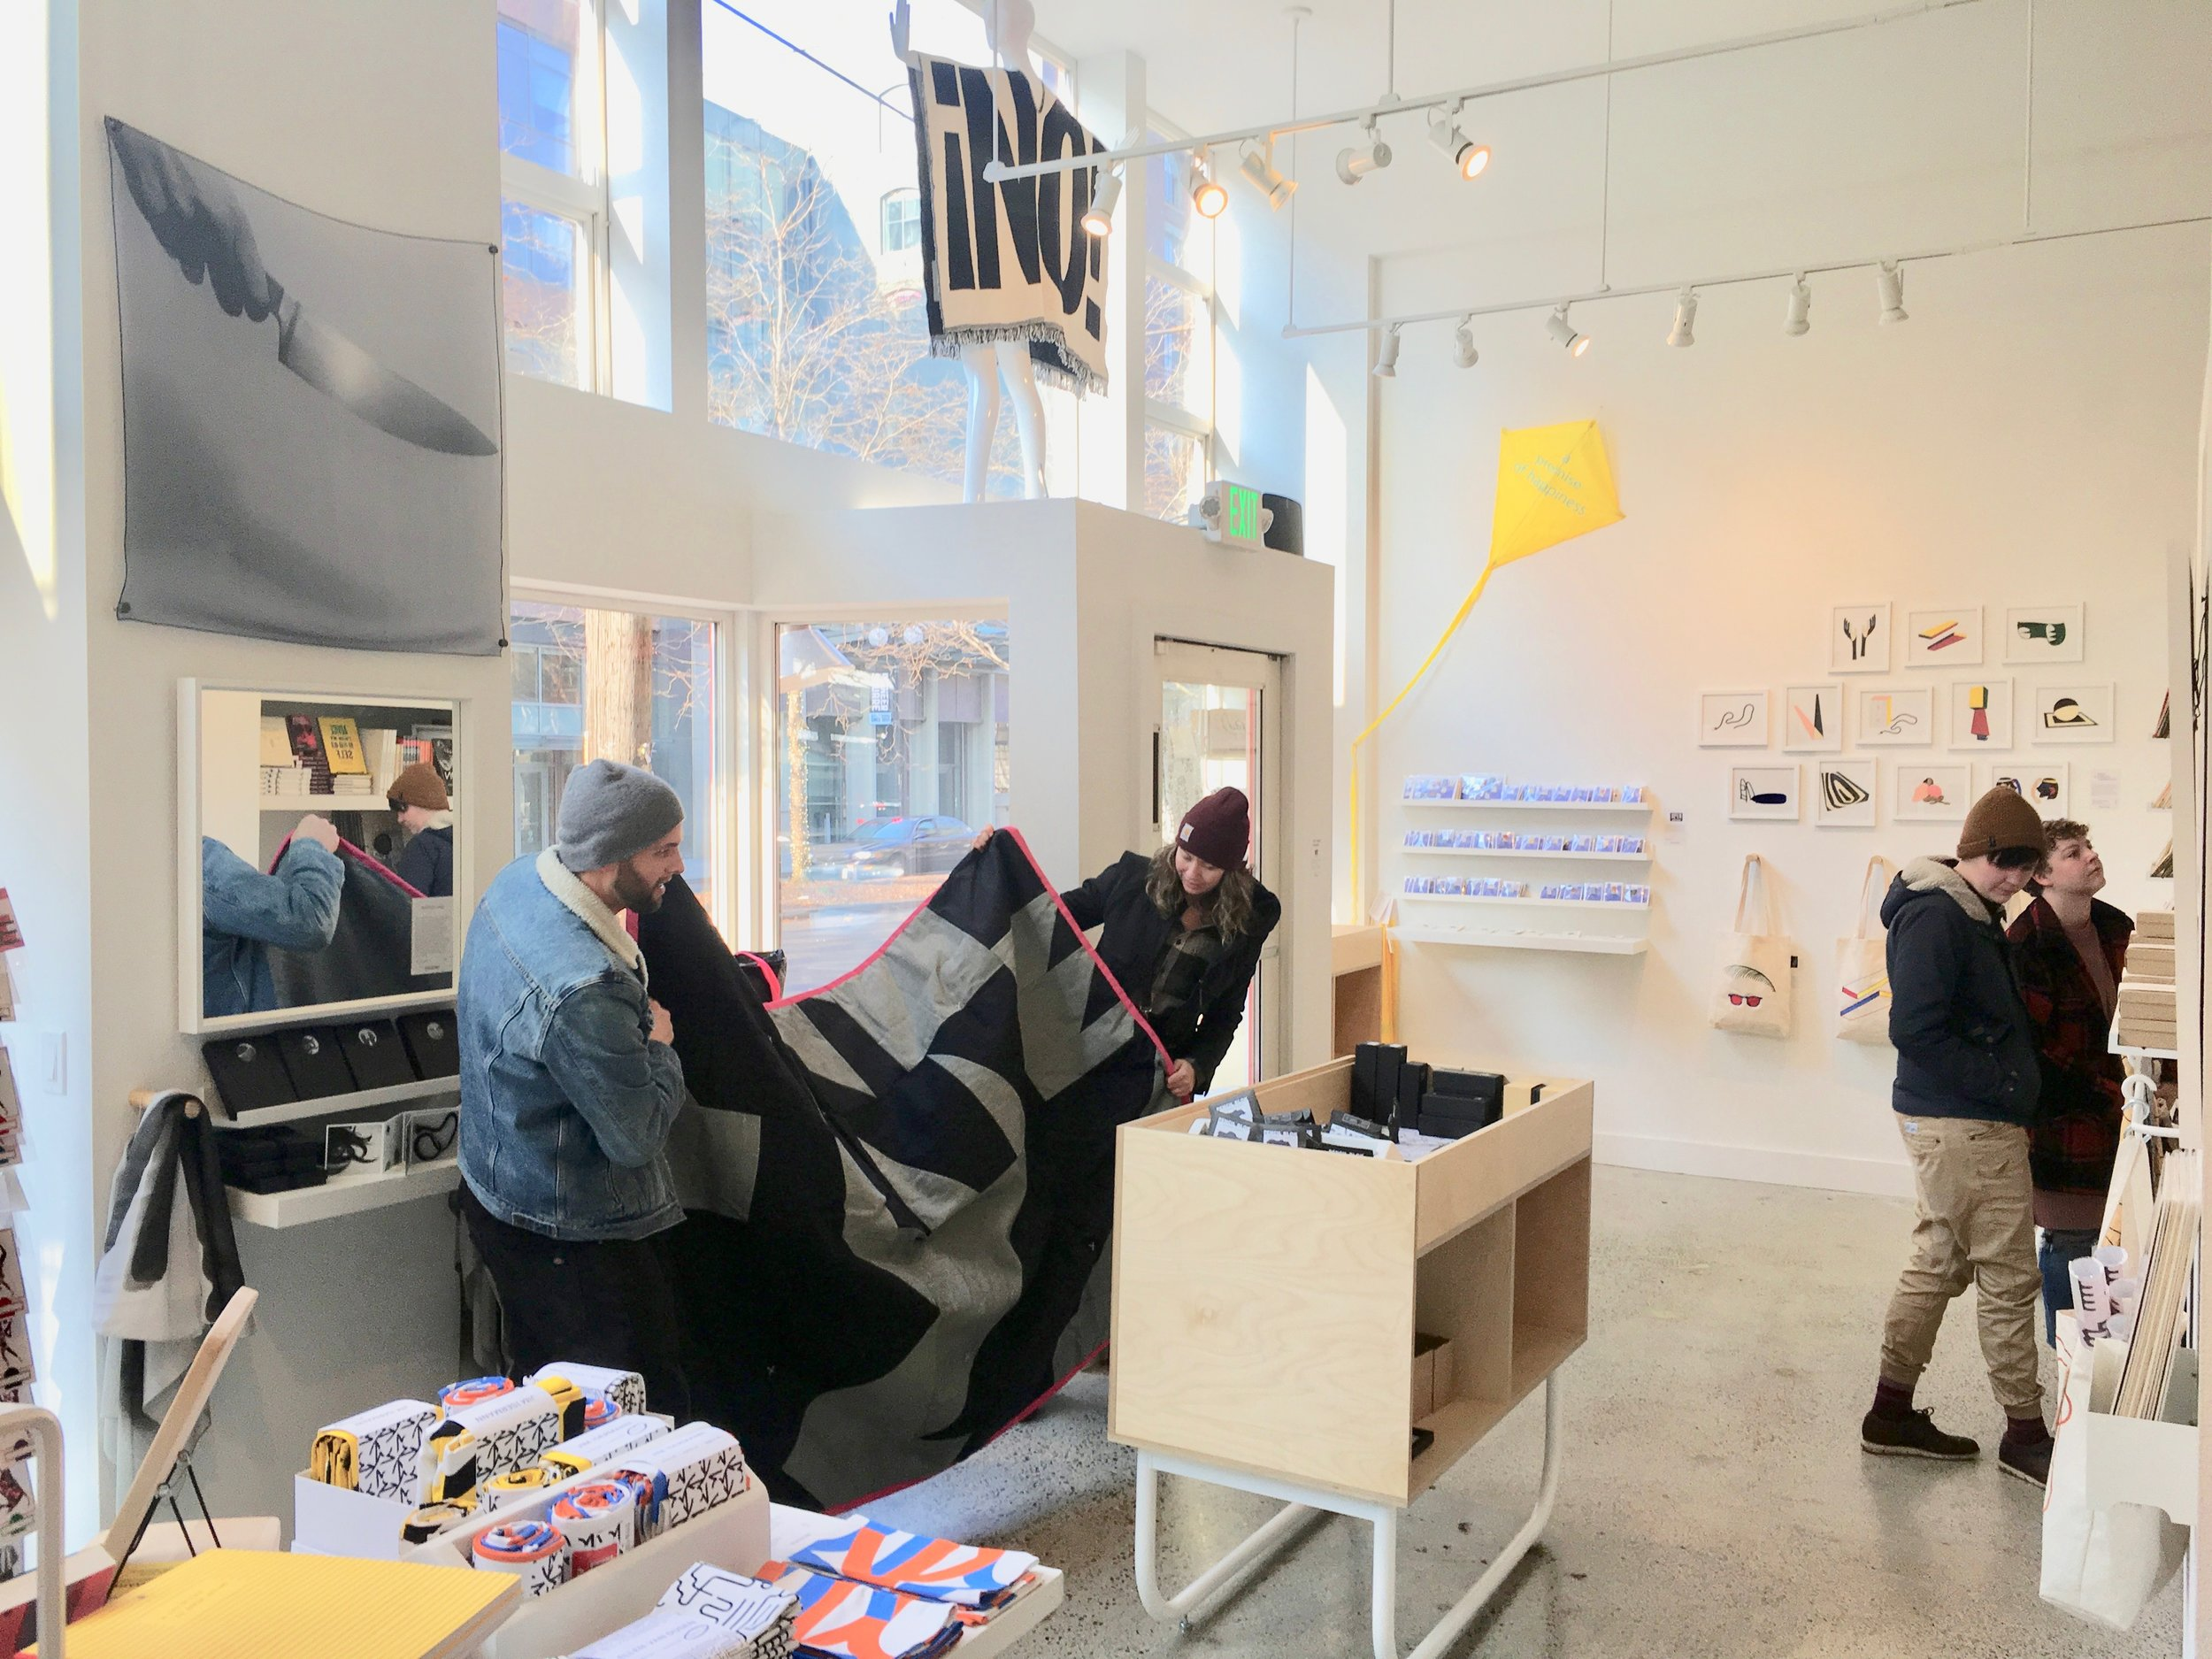 OPEN EDITIONS pop up at NON-BREAKING SPACE in Seattle